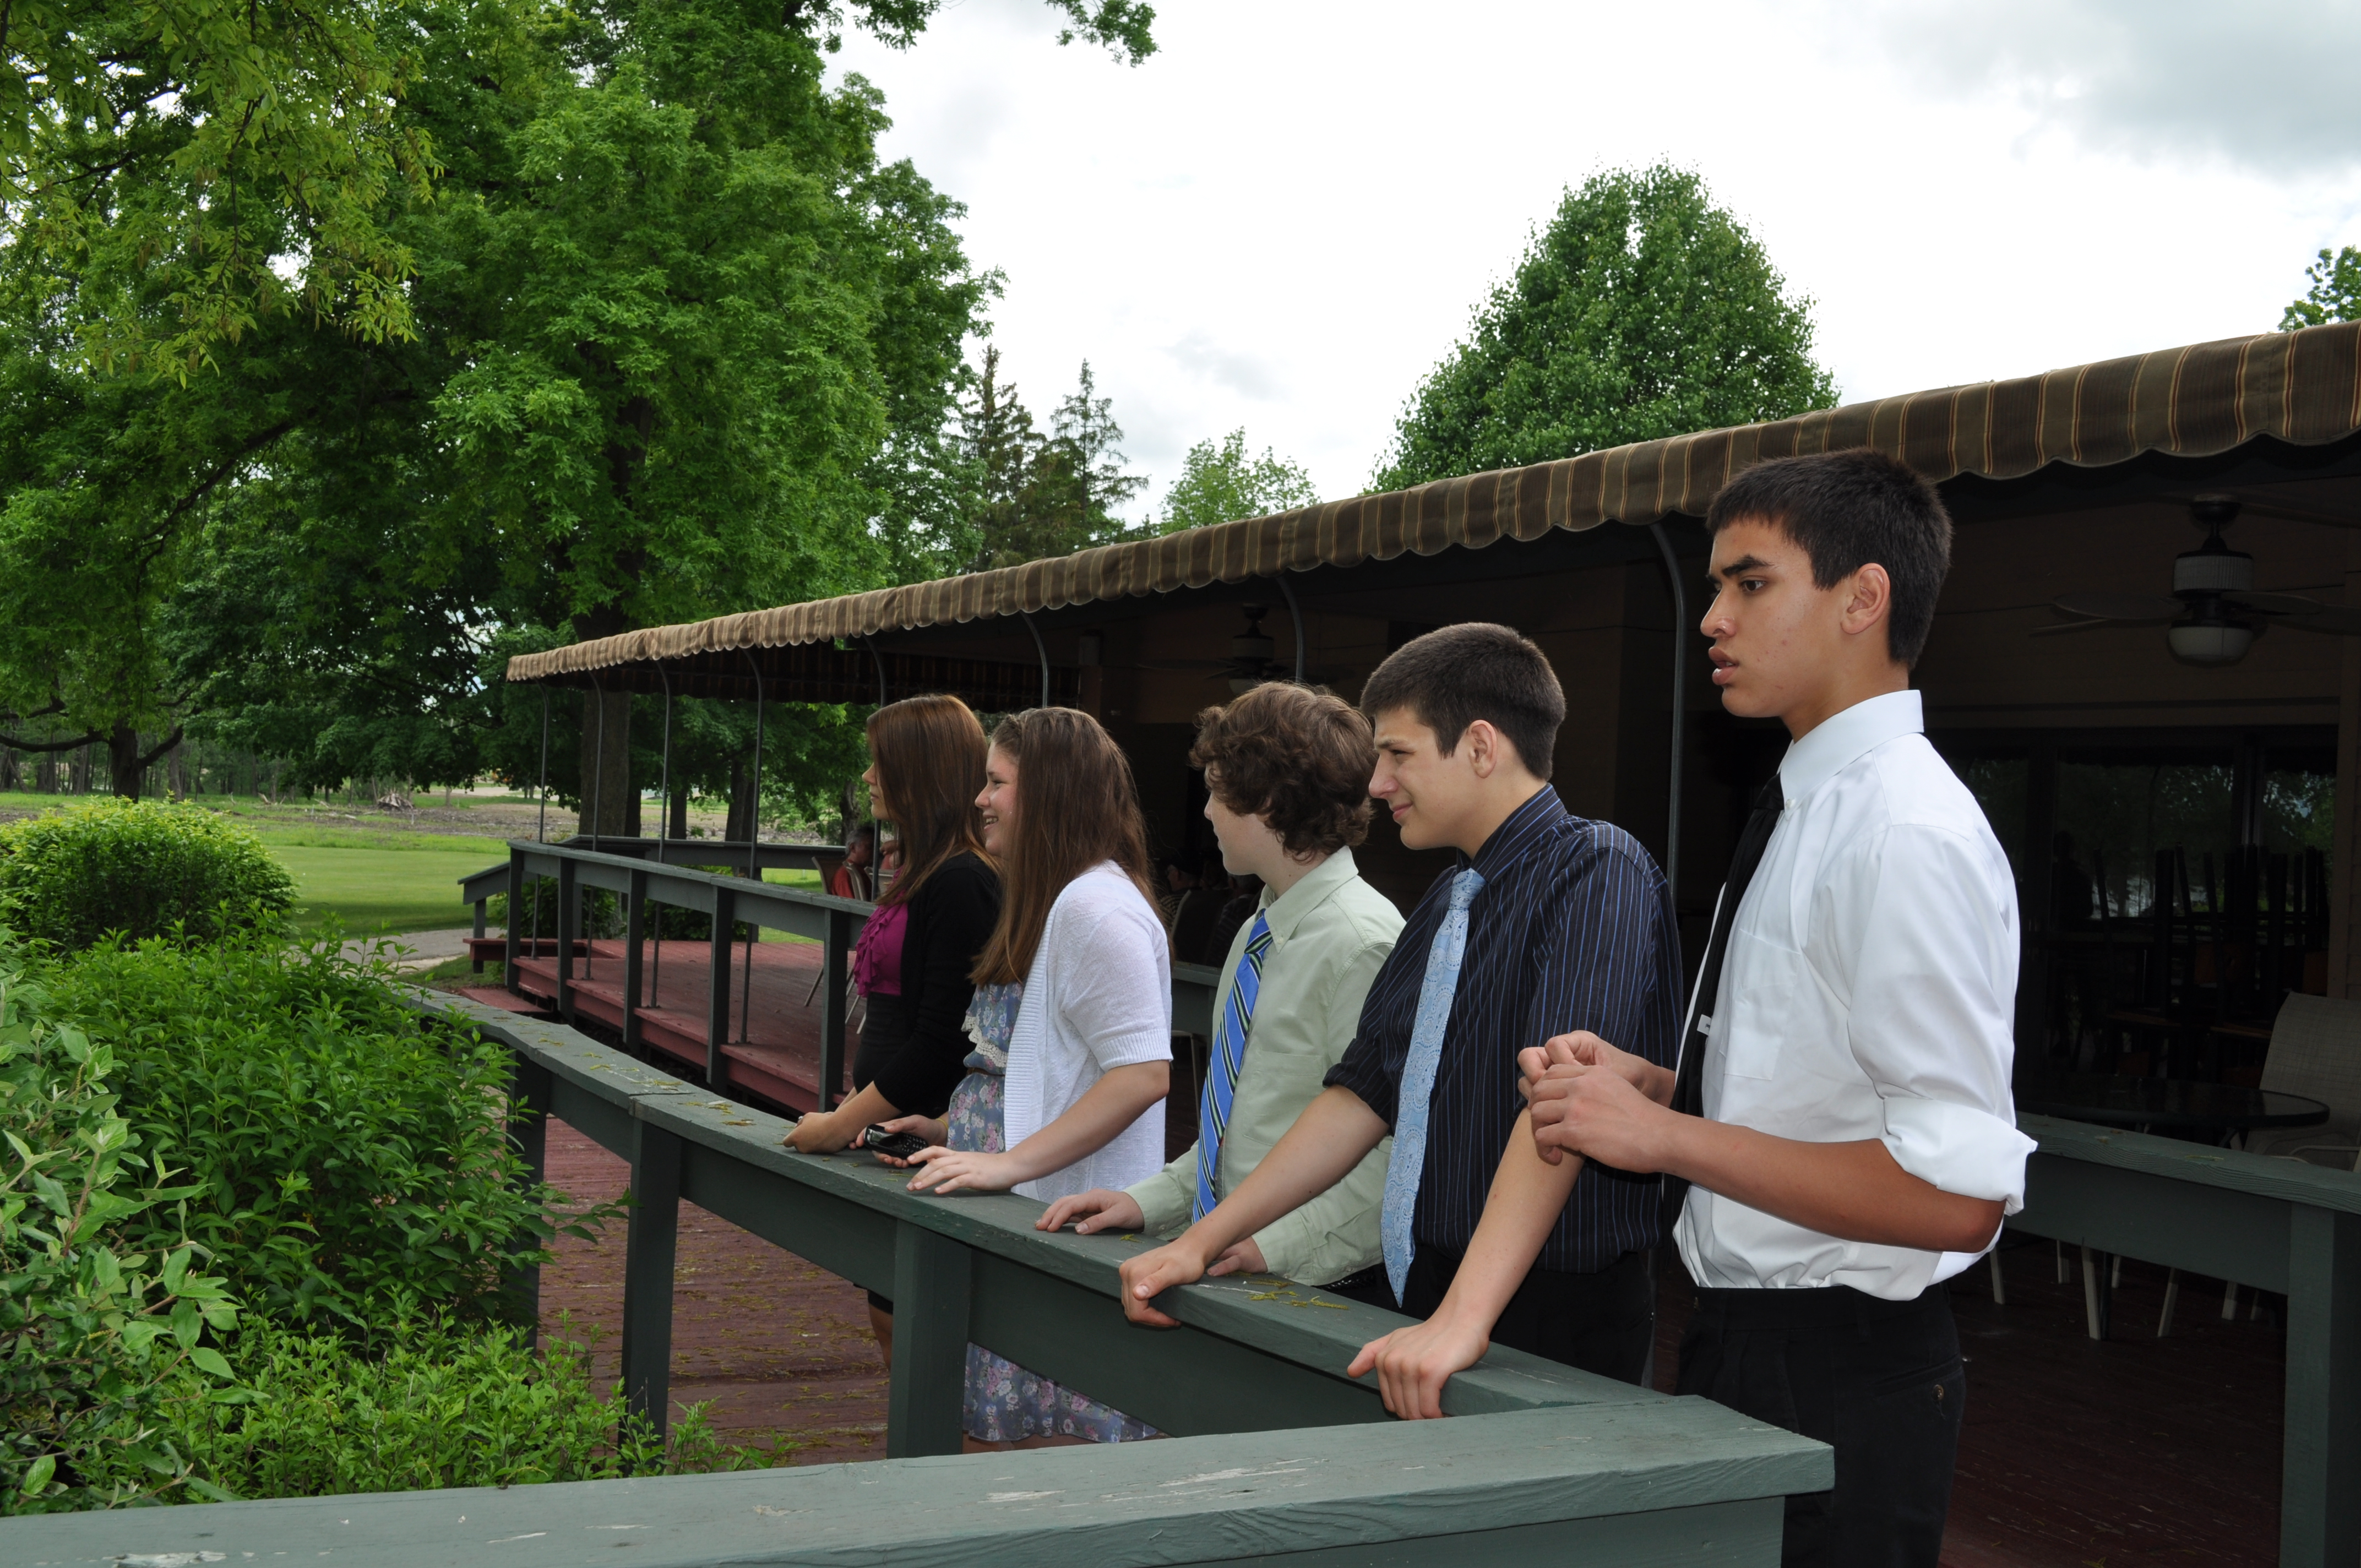 Teen's from FCFC's Ardent Youth group